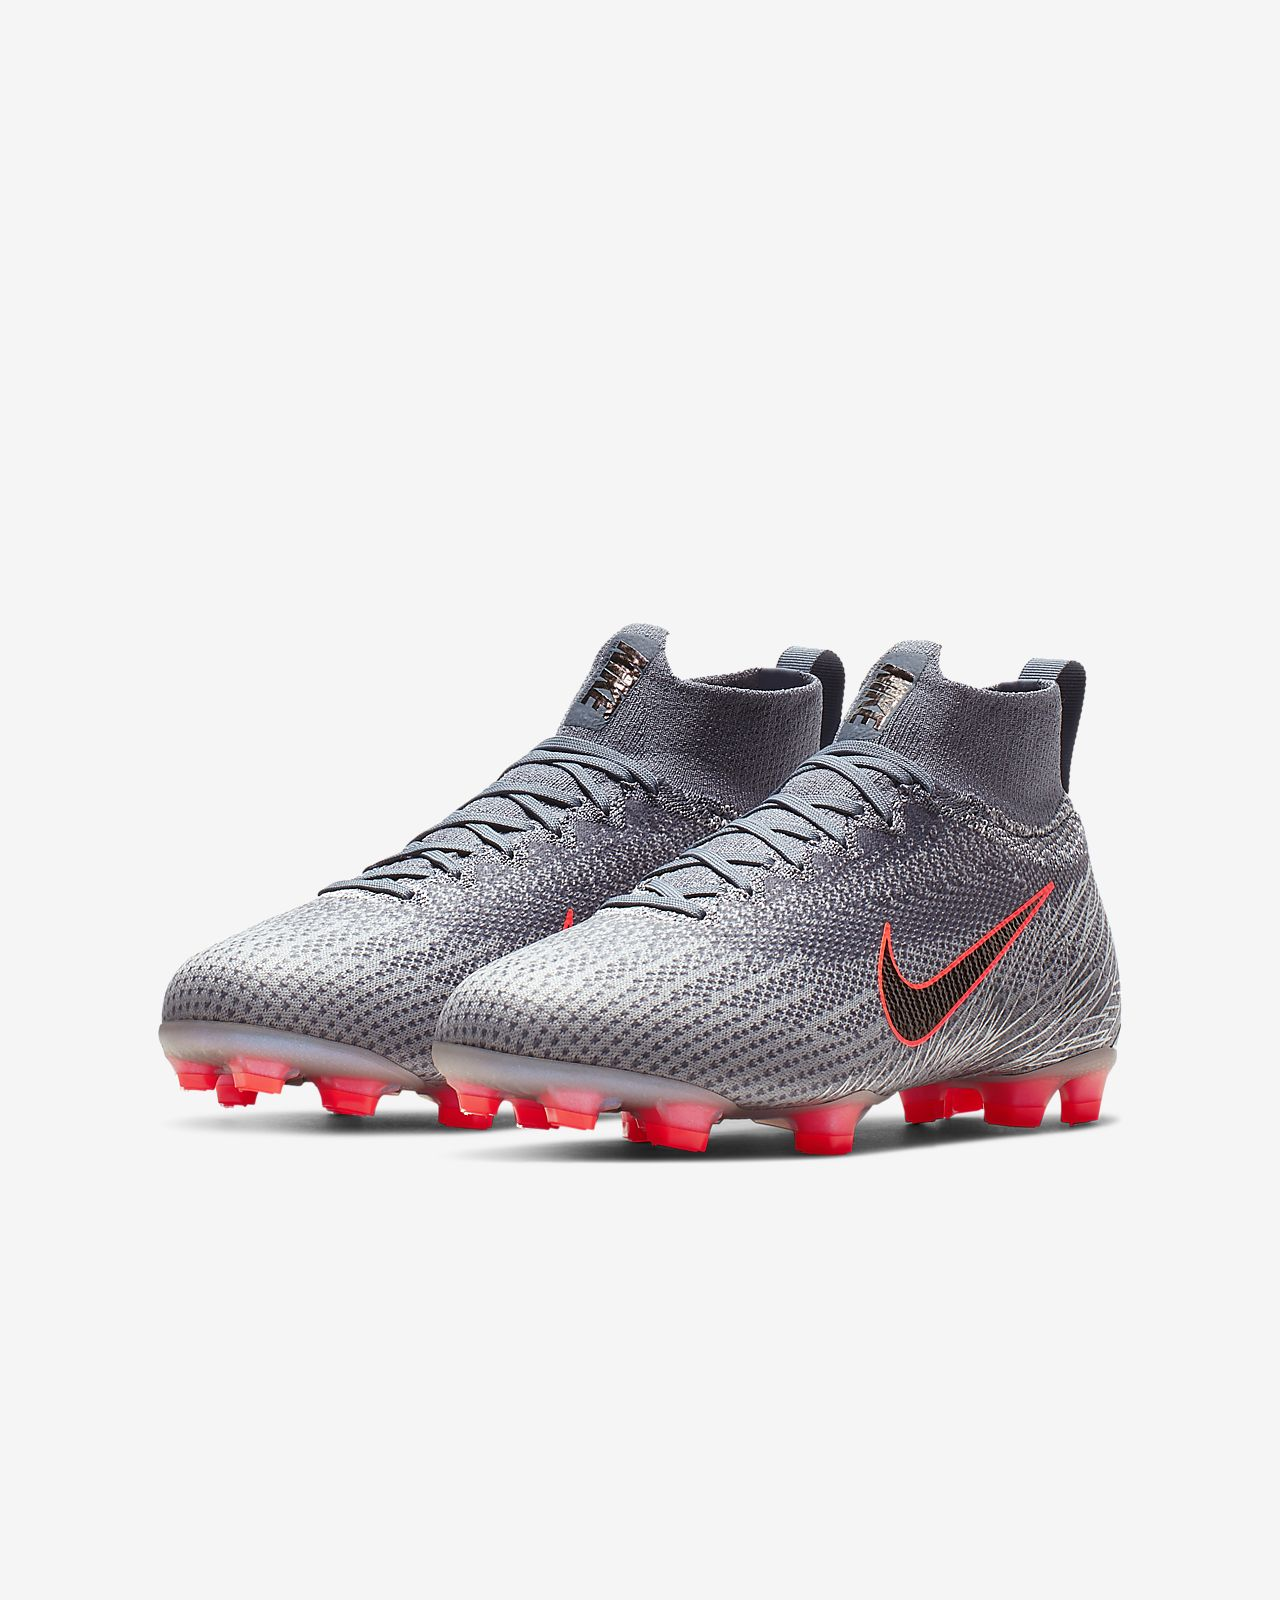 781827fd8 ... Nike Jr. Superfly 6 Elite FG Big Kids' Firm-Ground Soccer Cleat